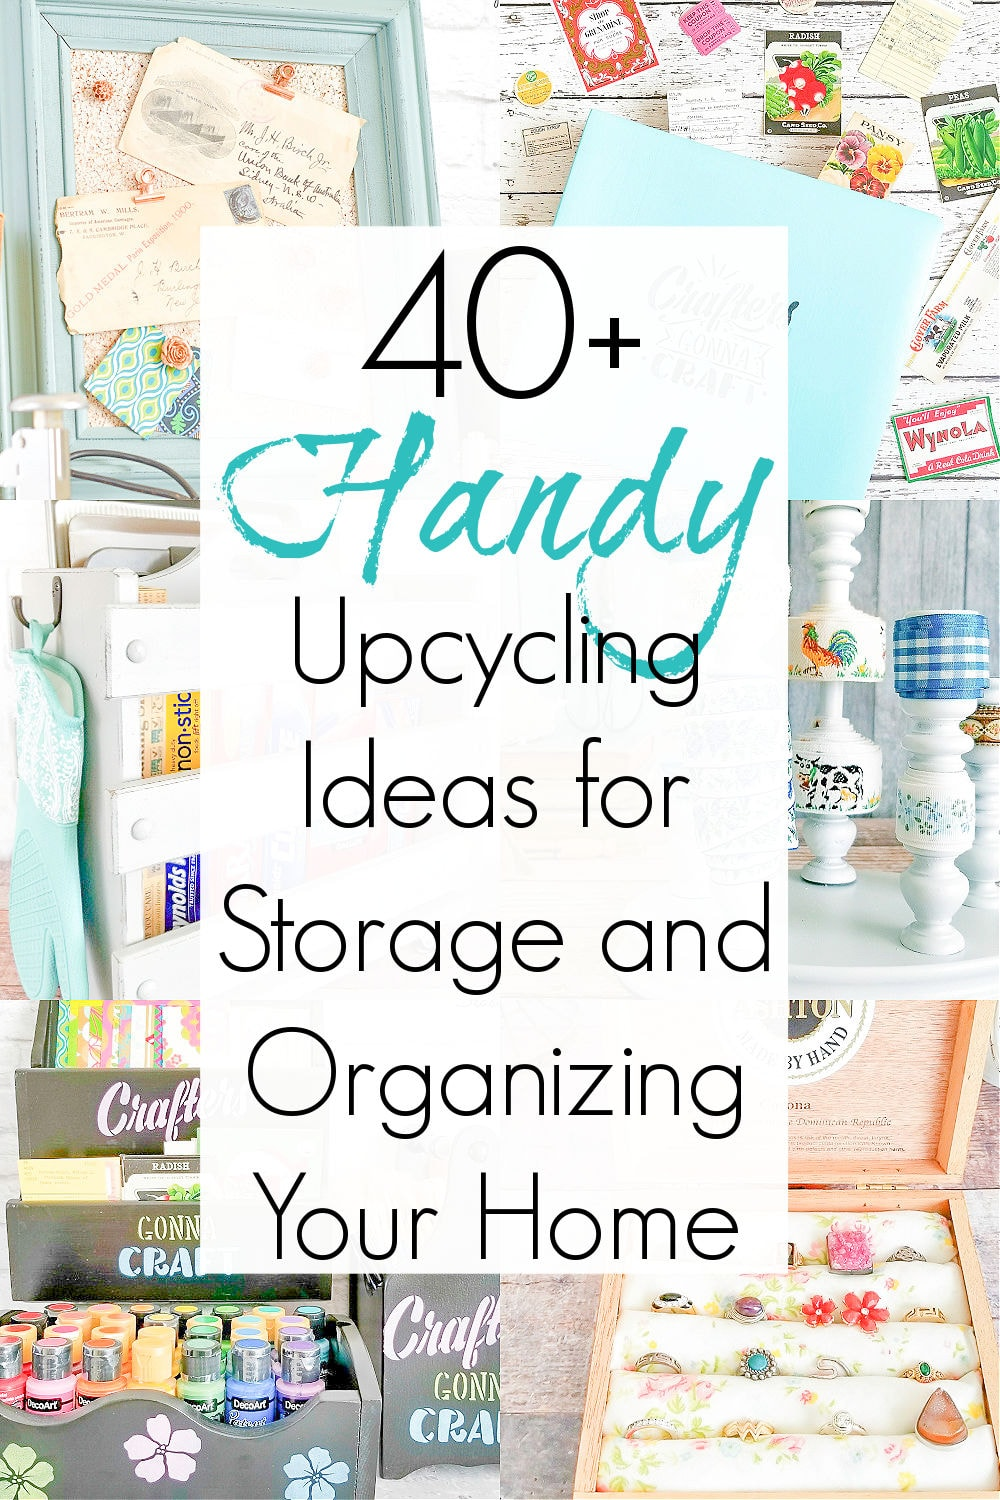 Recycling ideas for organization and easy upcycling ideas for storage